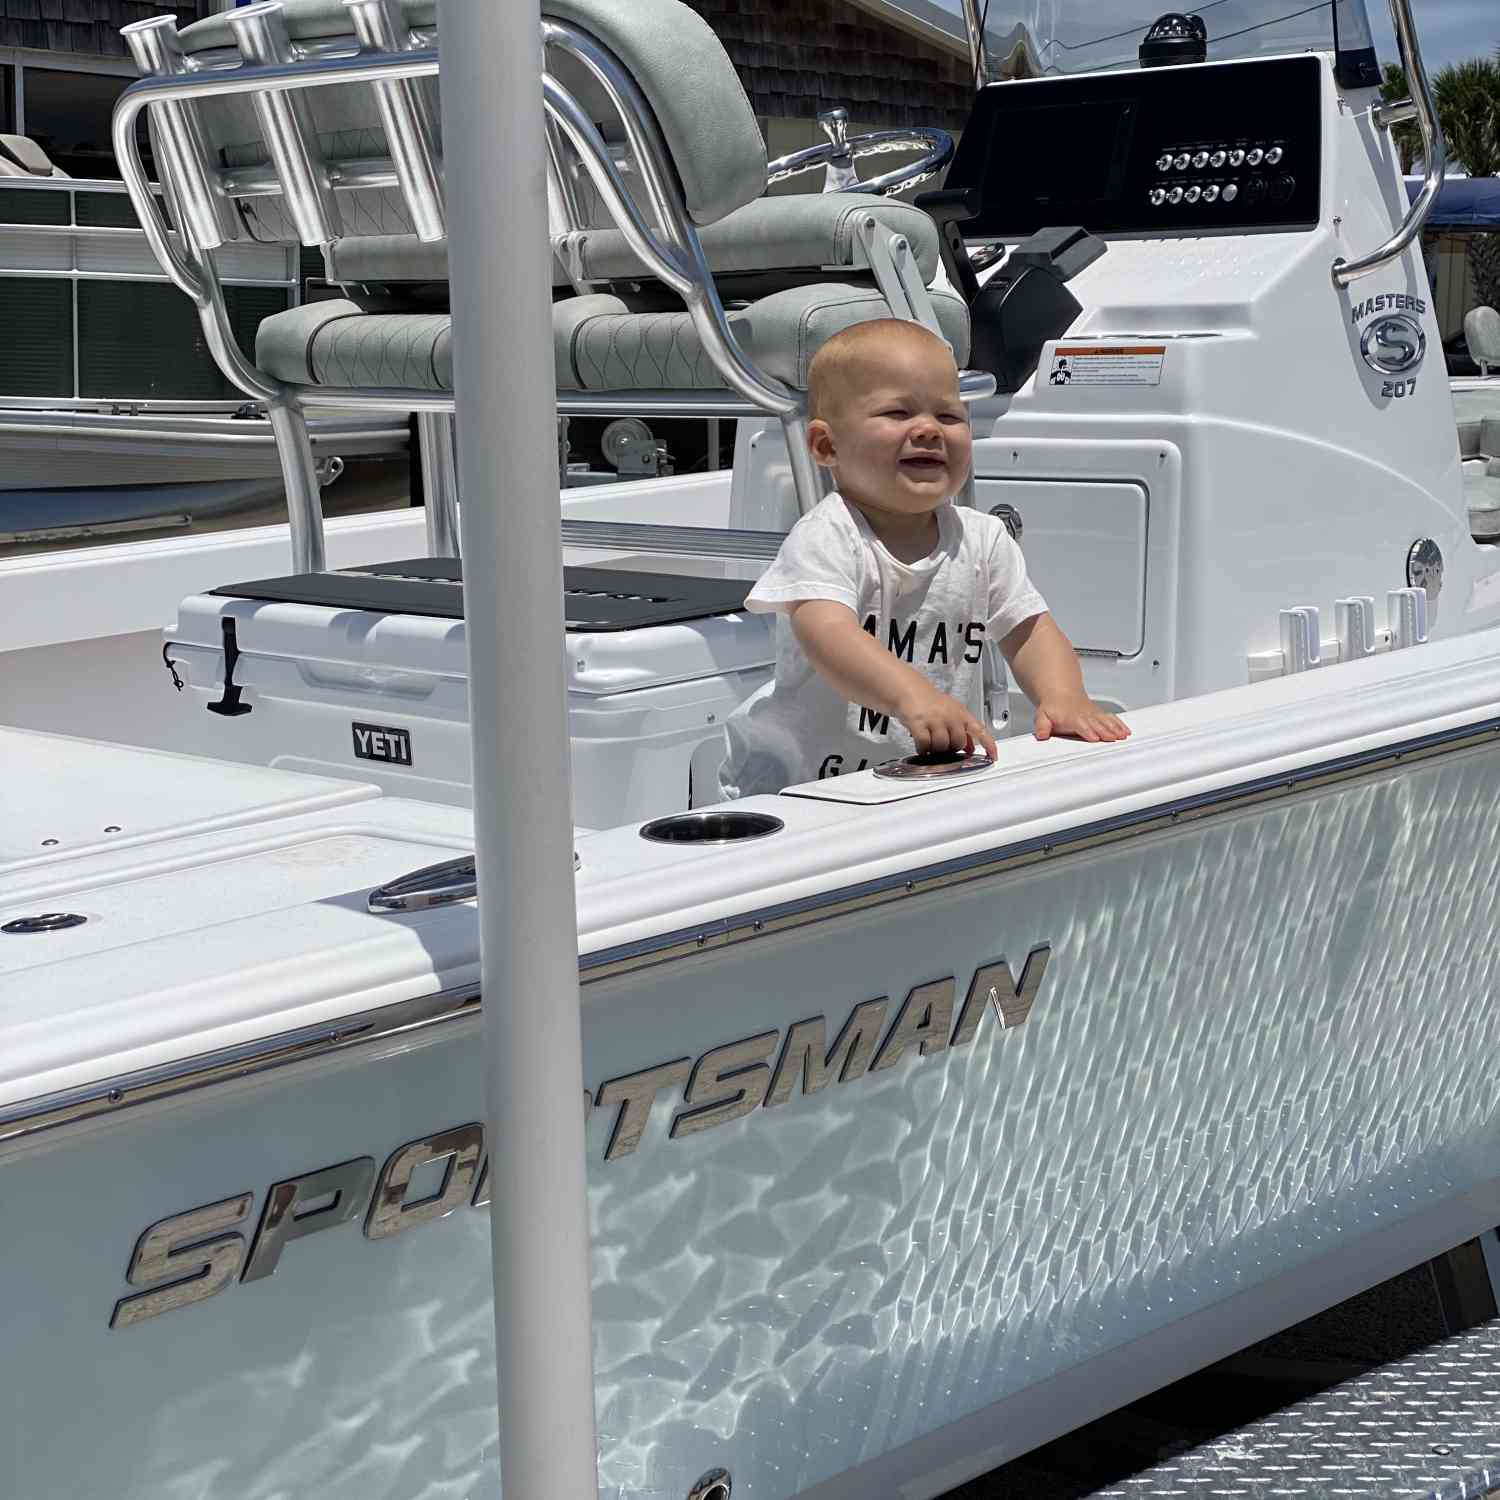 Title: Captain Becks - On board their Sportsman Masters 207 Bay Boat - Location: NSB, Fl. Participating in the Photo Contest #SportsmanJune2020